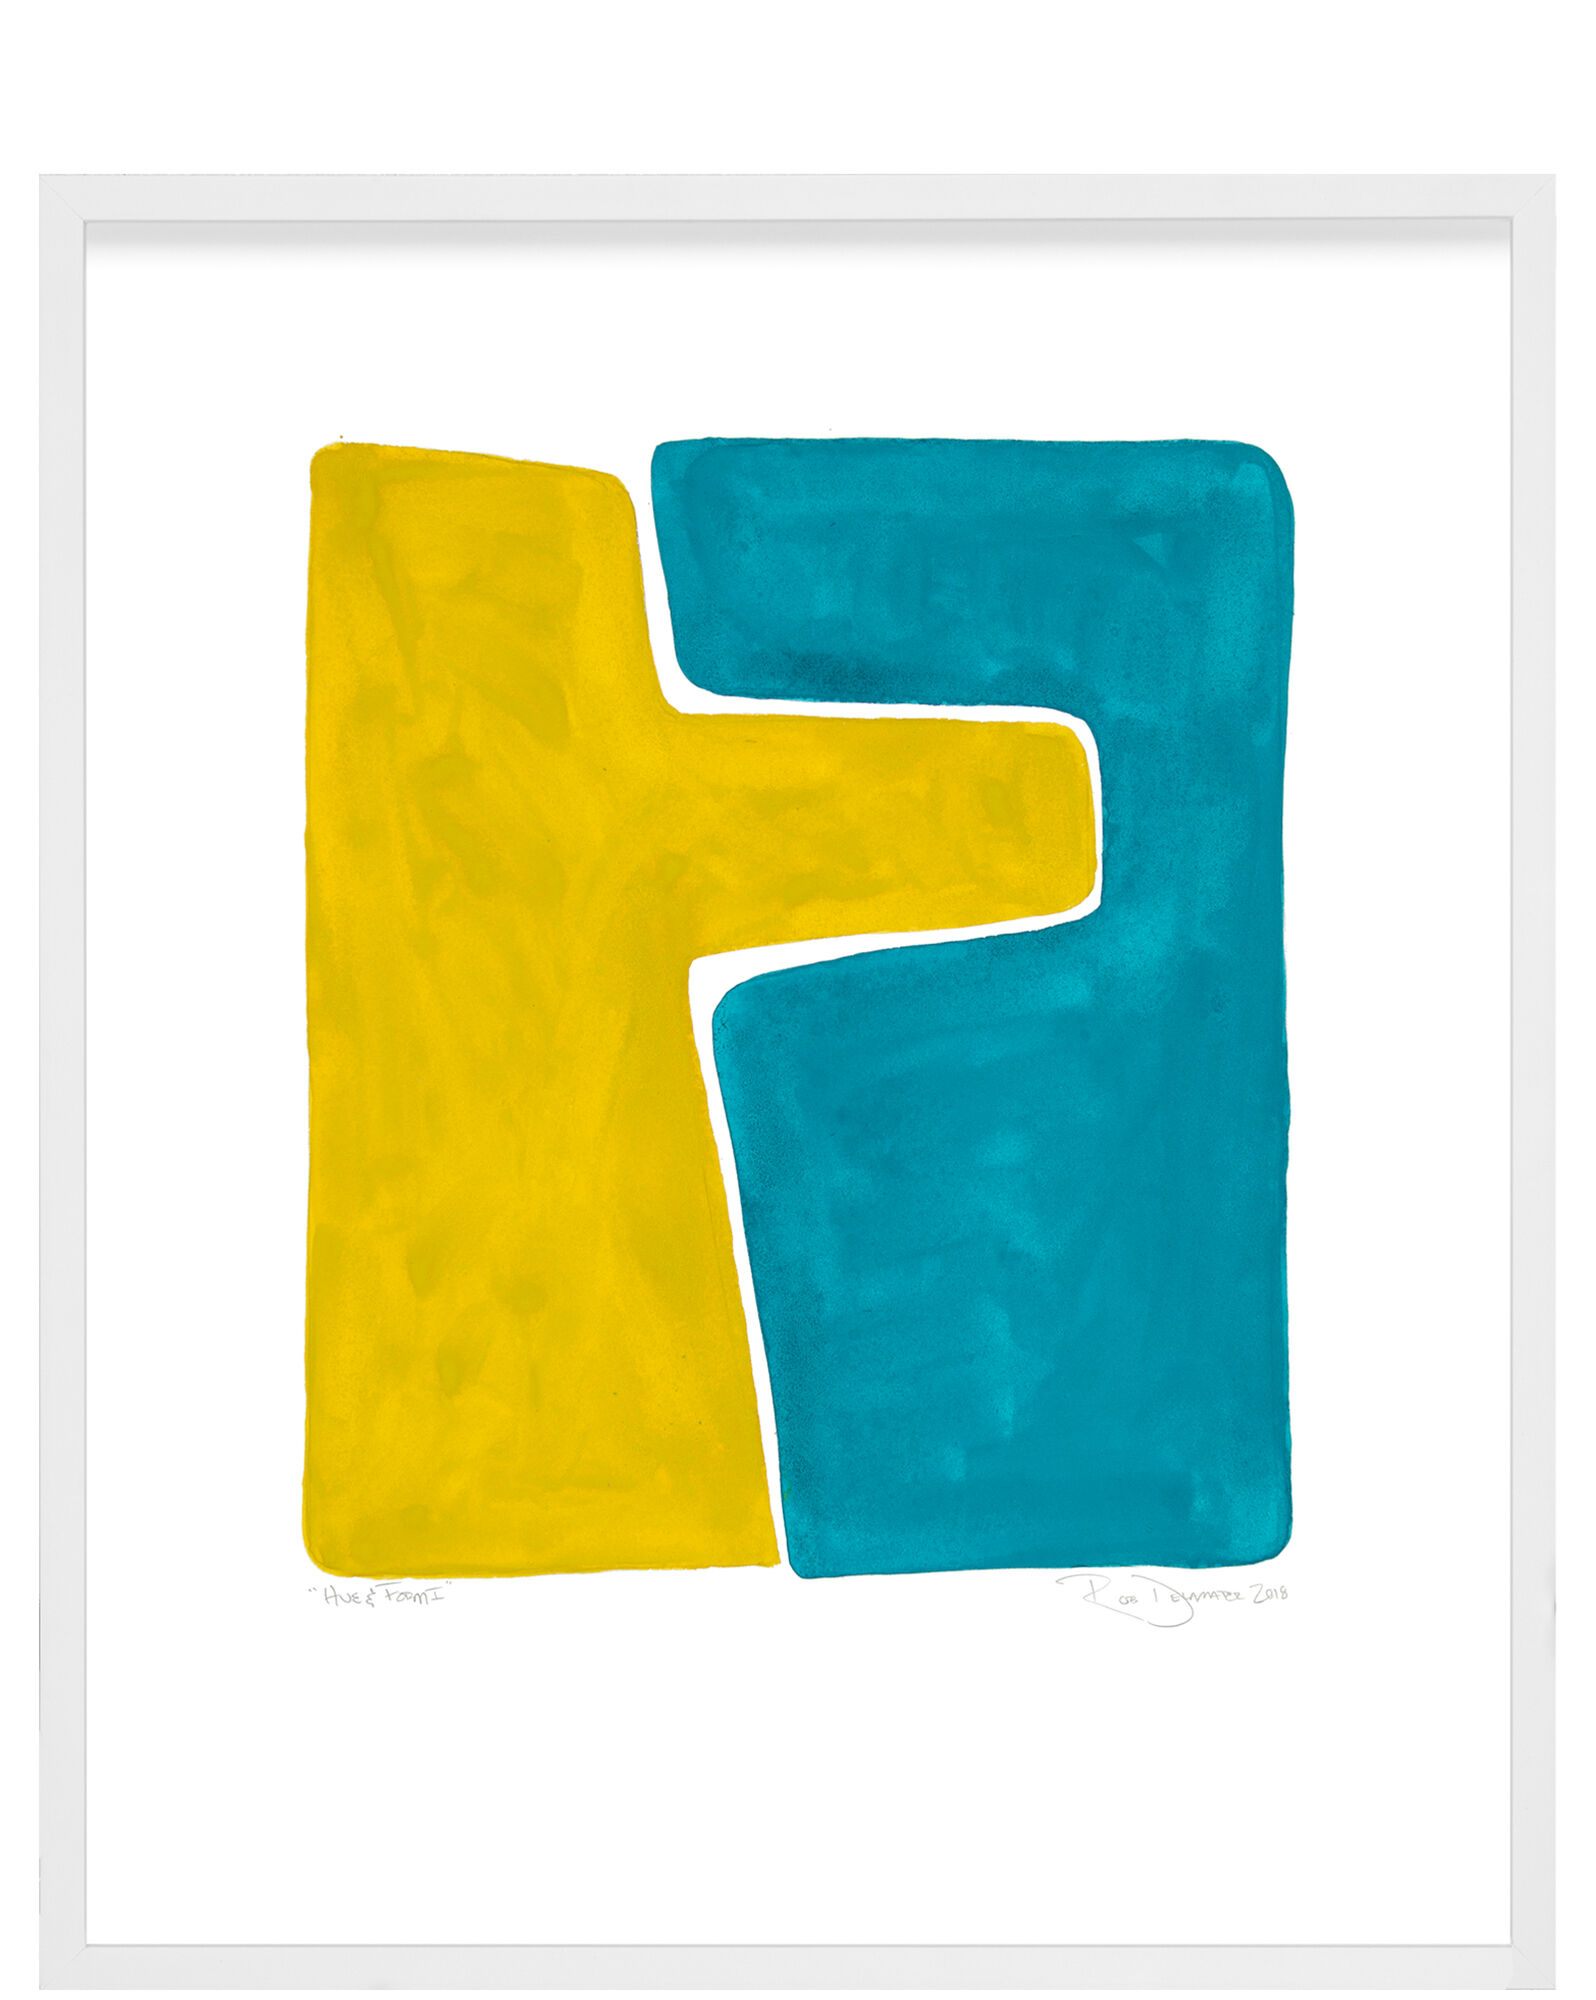 """""""Hue & Form"""" by Rob Delamater, White Frame"""